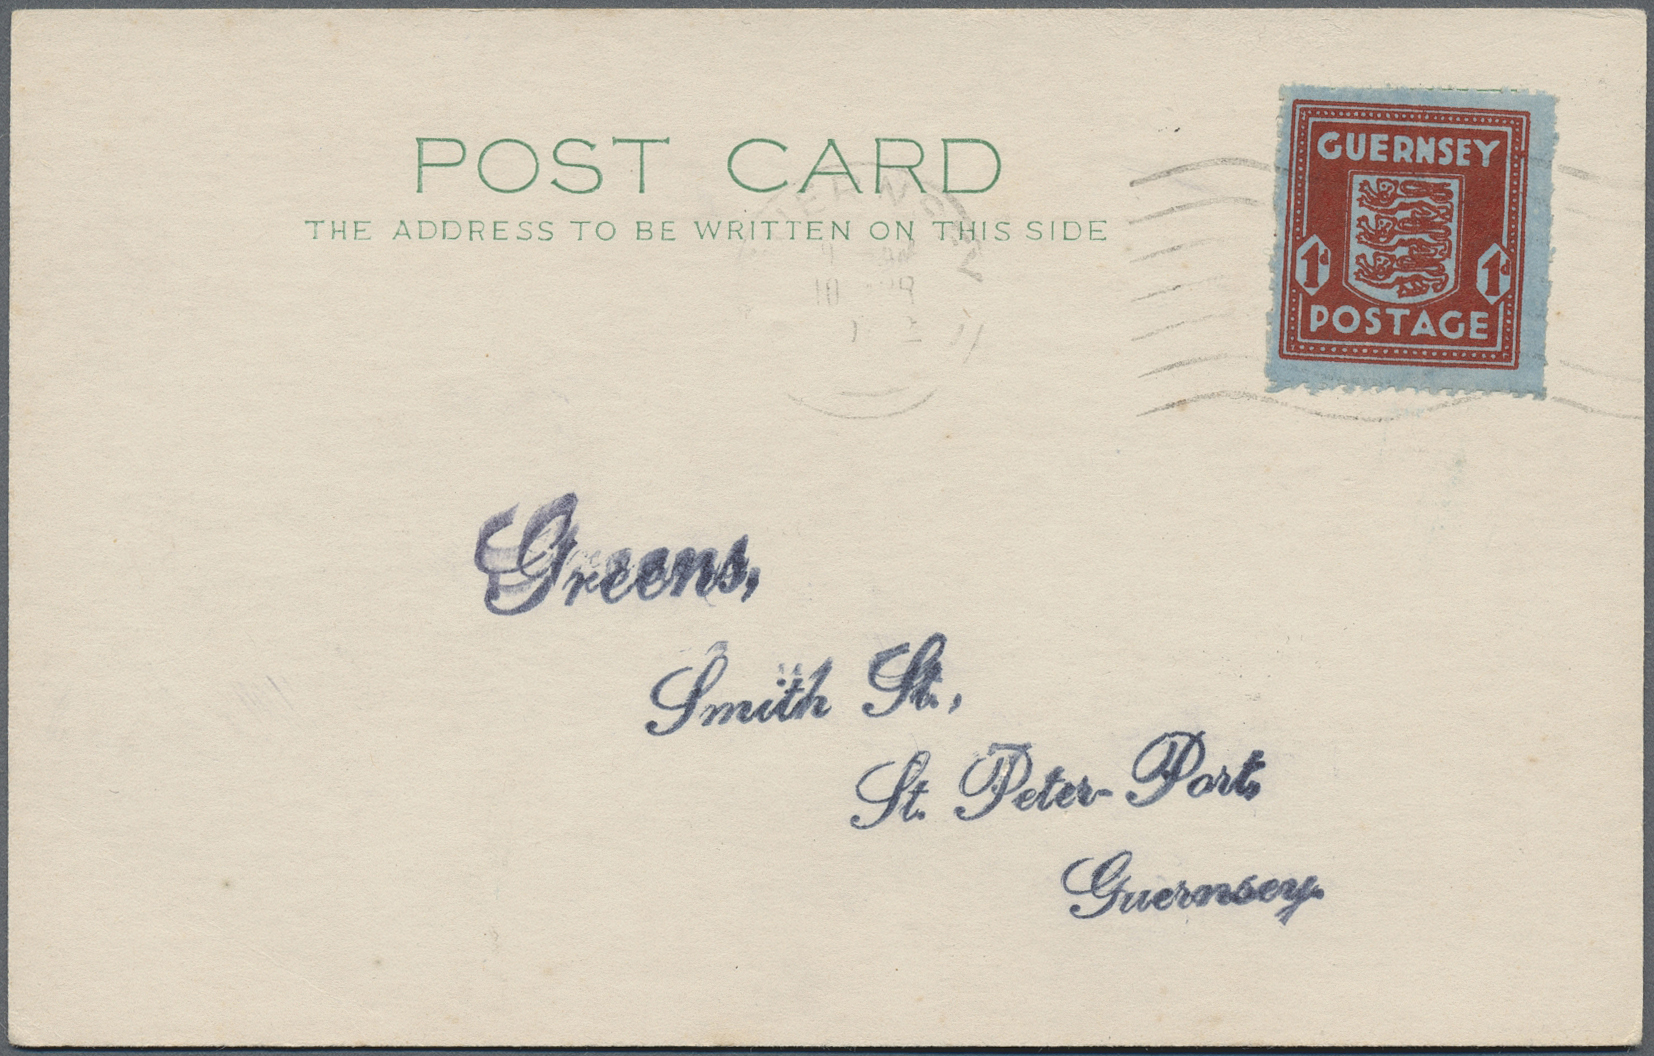 Lot 19441 - Dt. Besetzung II WK - Guernsey  -  Auktionshaus Christoph Gärtner GmbH & Co. KG Auction #40 Germany, Picture Post Cards, Collections Overseas, Thematics